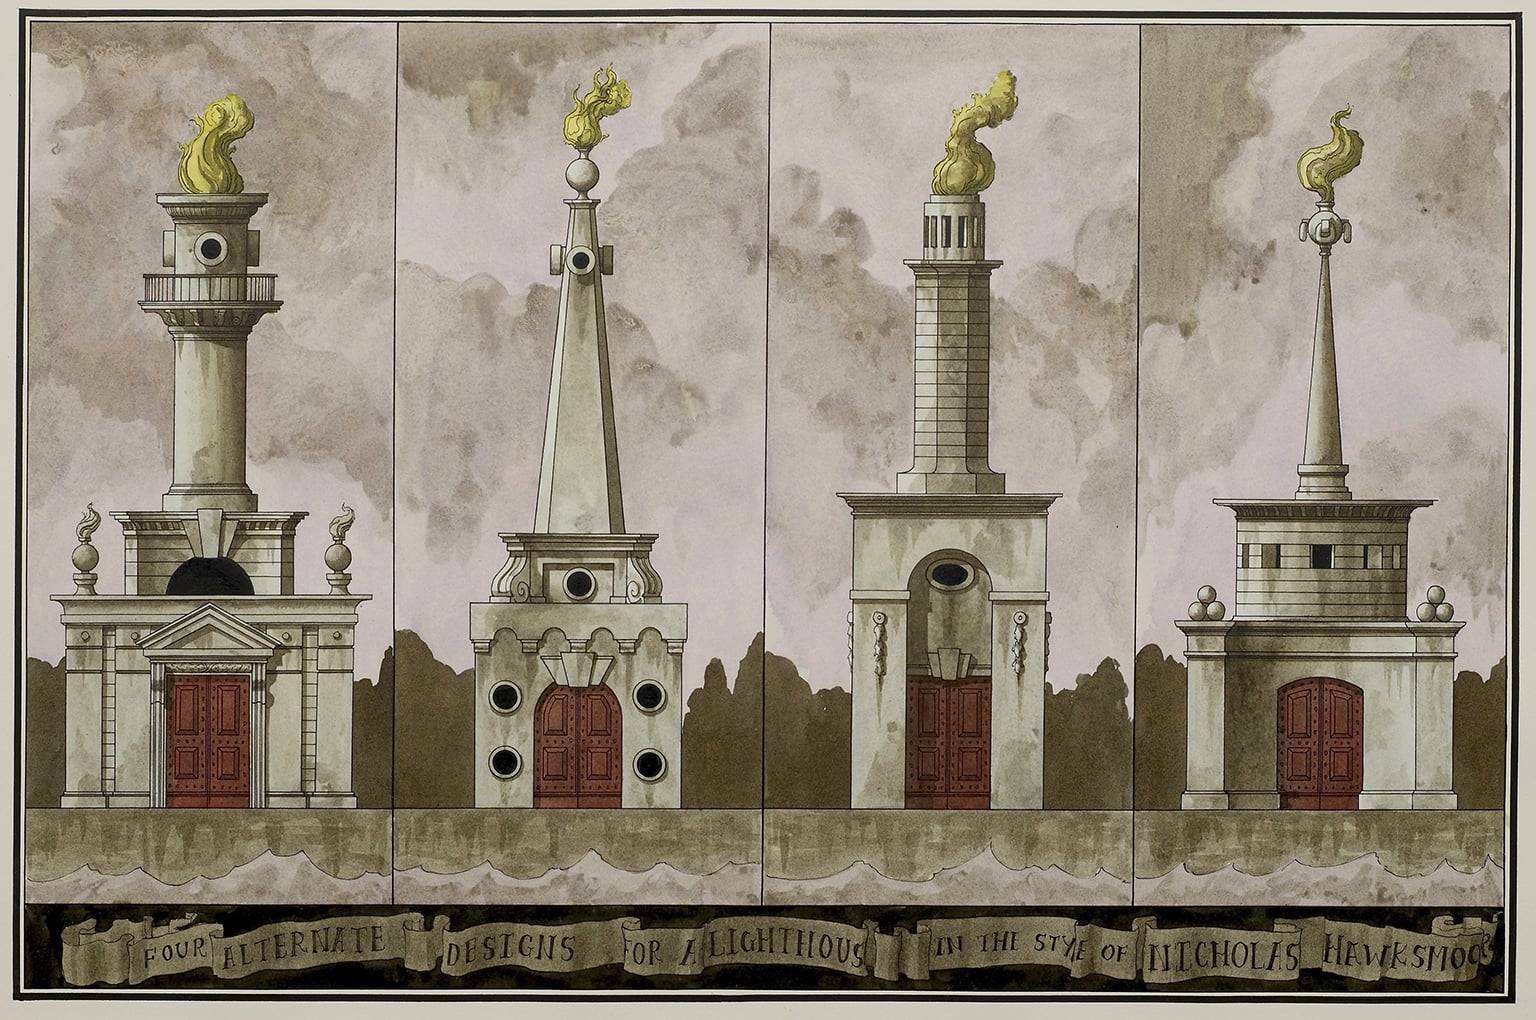 Pablo Bronstein, Four Alternate Designs for a Lighthouse in the Style of Nicholas Hawksmoor, 2014 - courtesy Herald Street Gallery